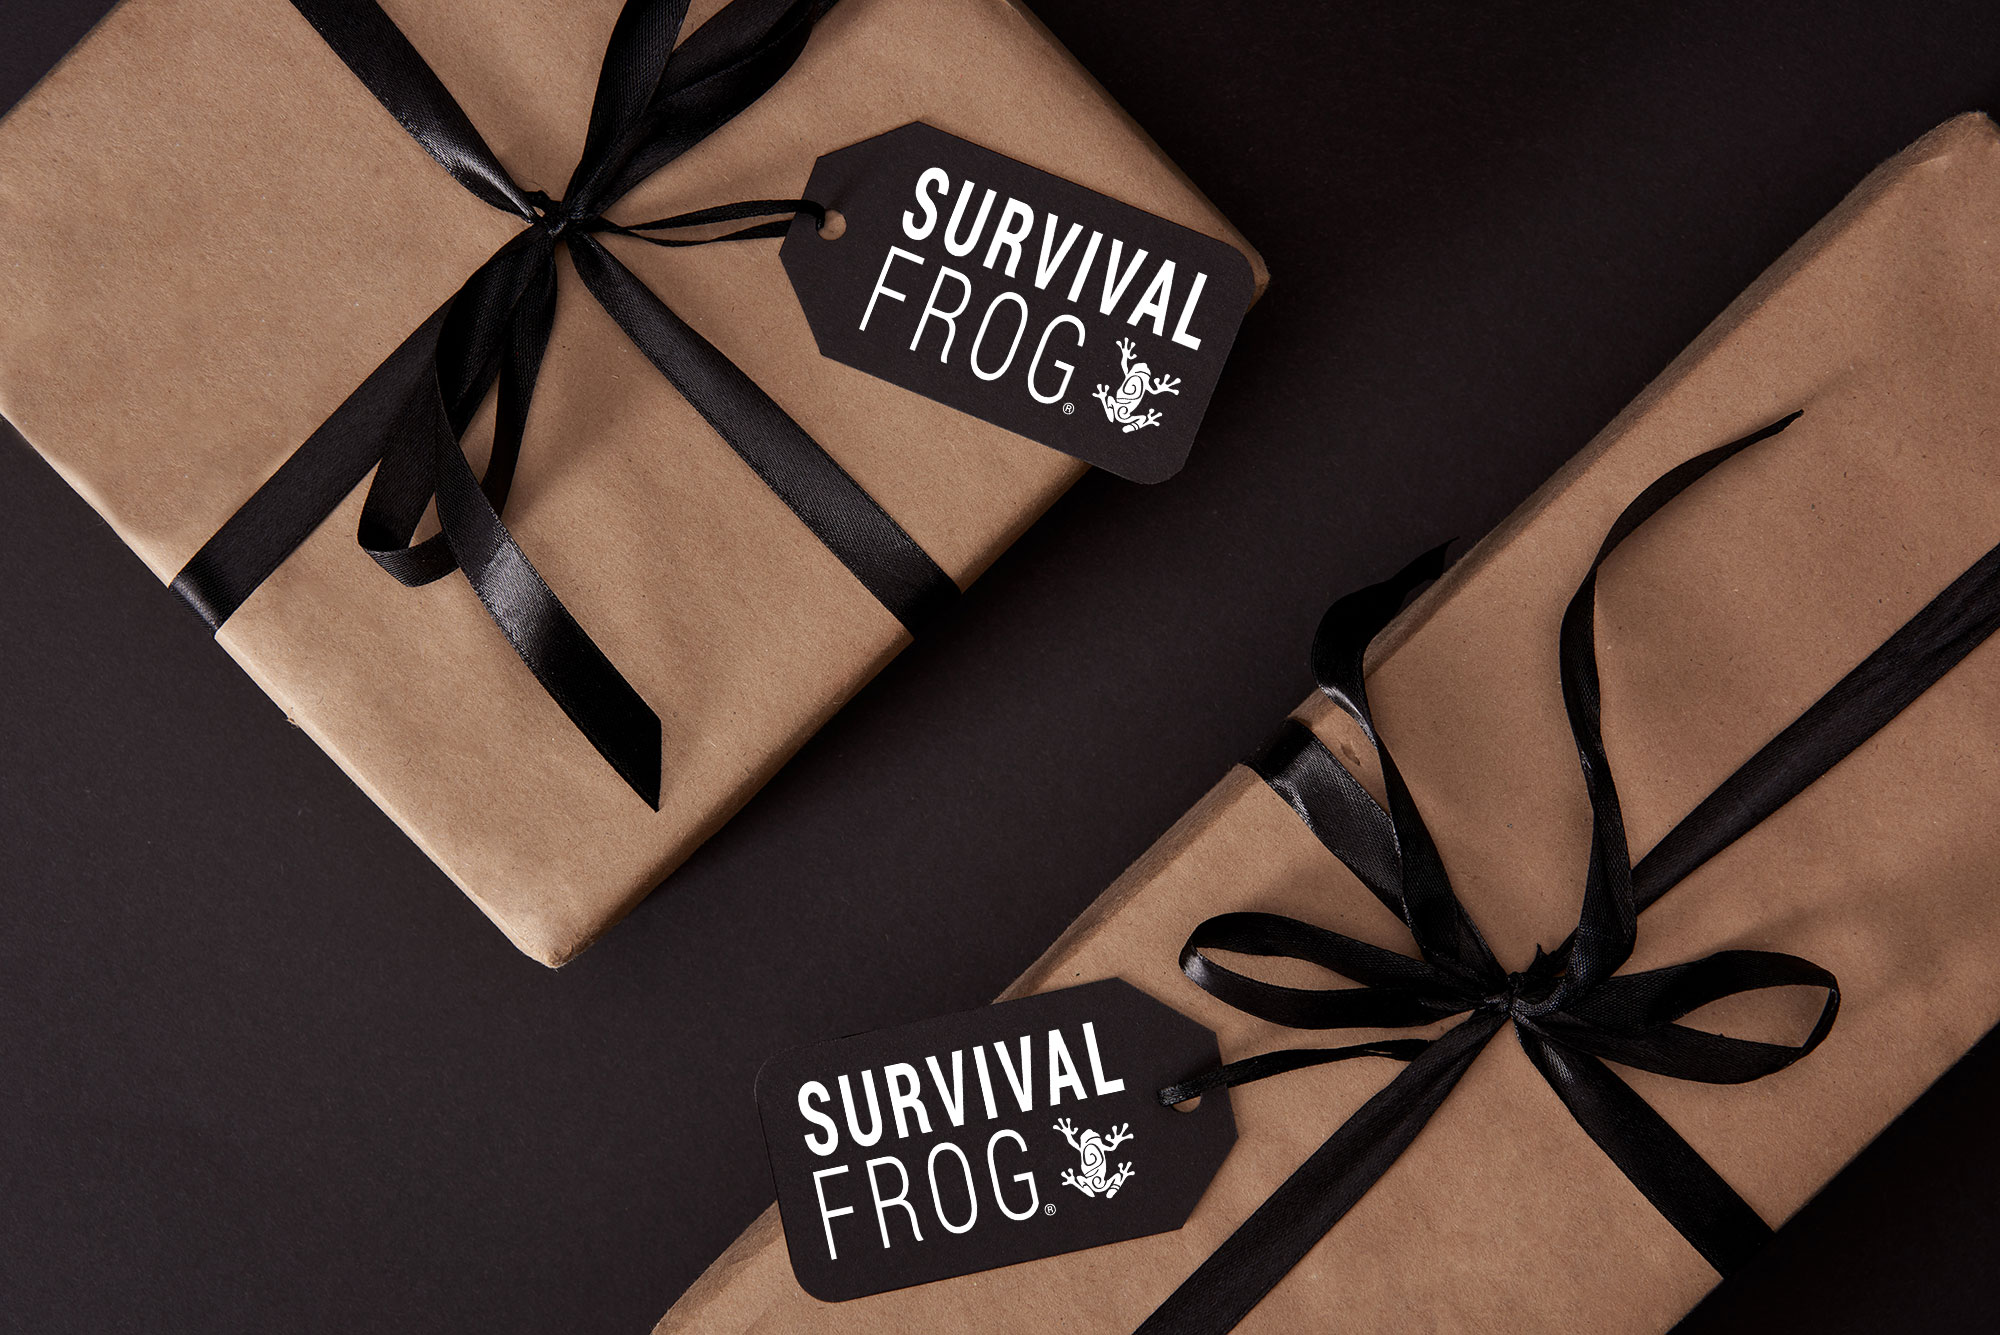 <h1>Survival Frog 2020 Gift Guide</h1>